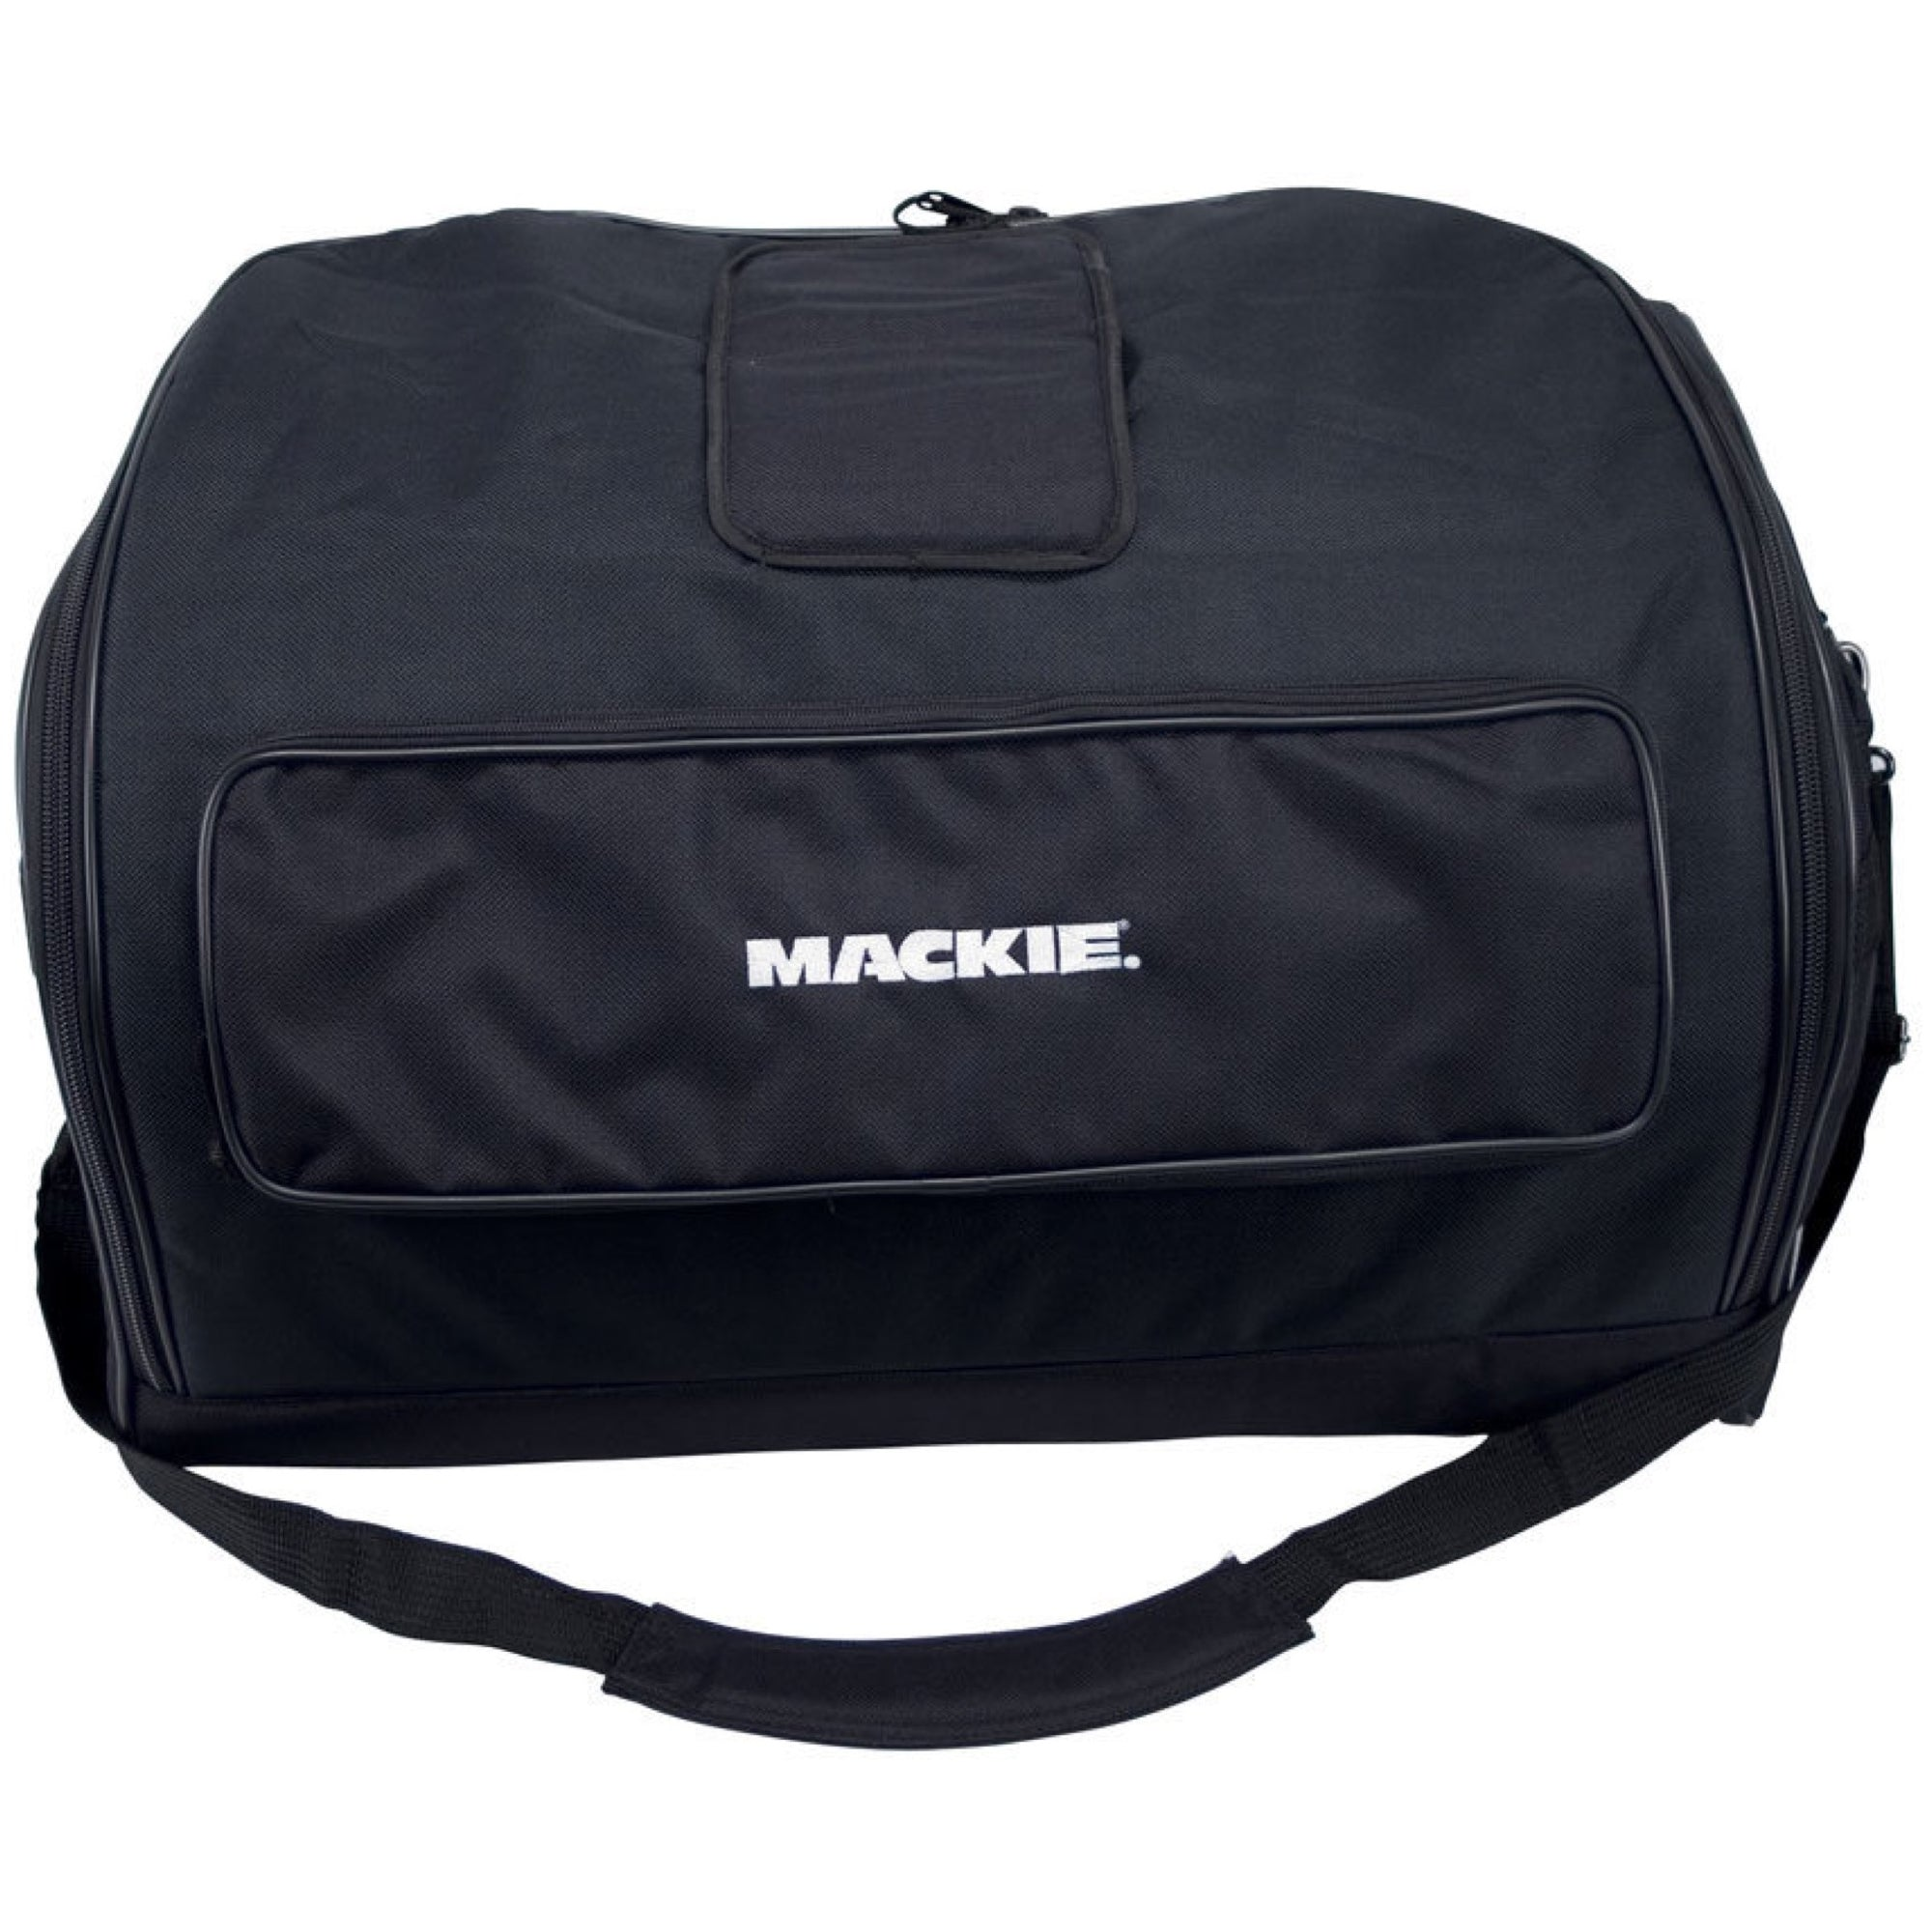 Mackie Speaker Bag for SRM450 and C300z